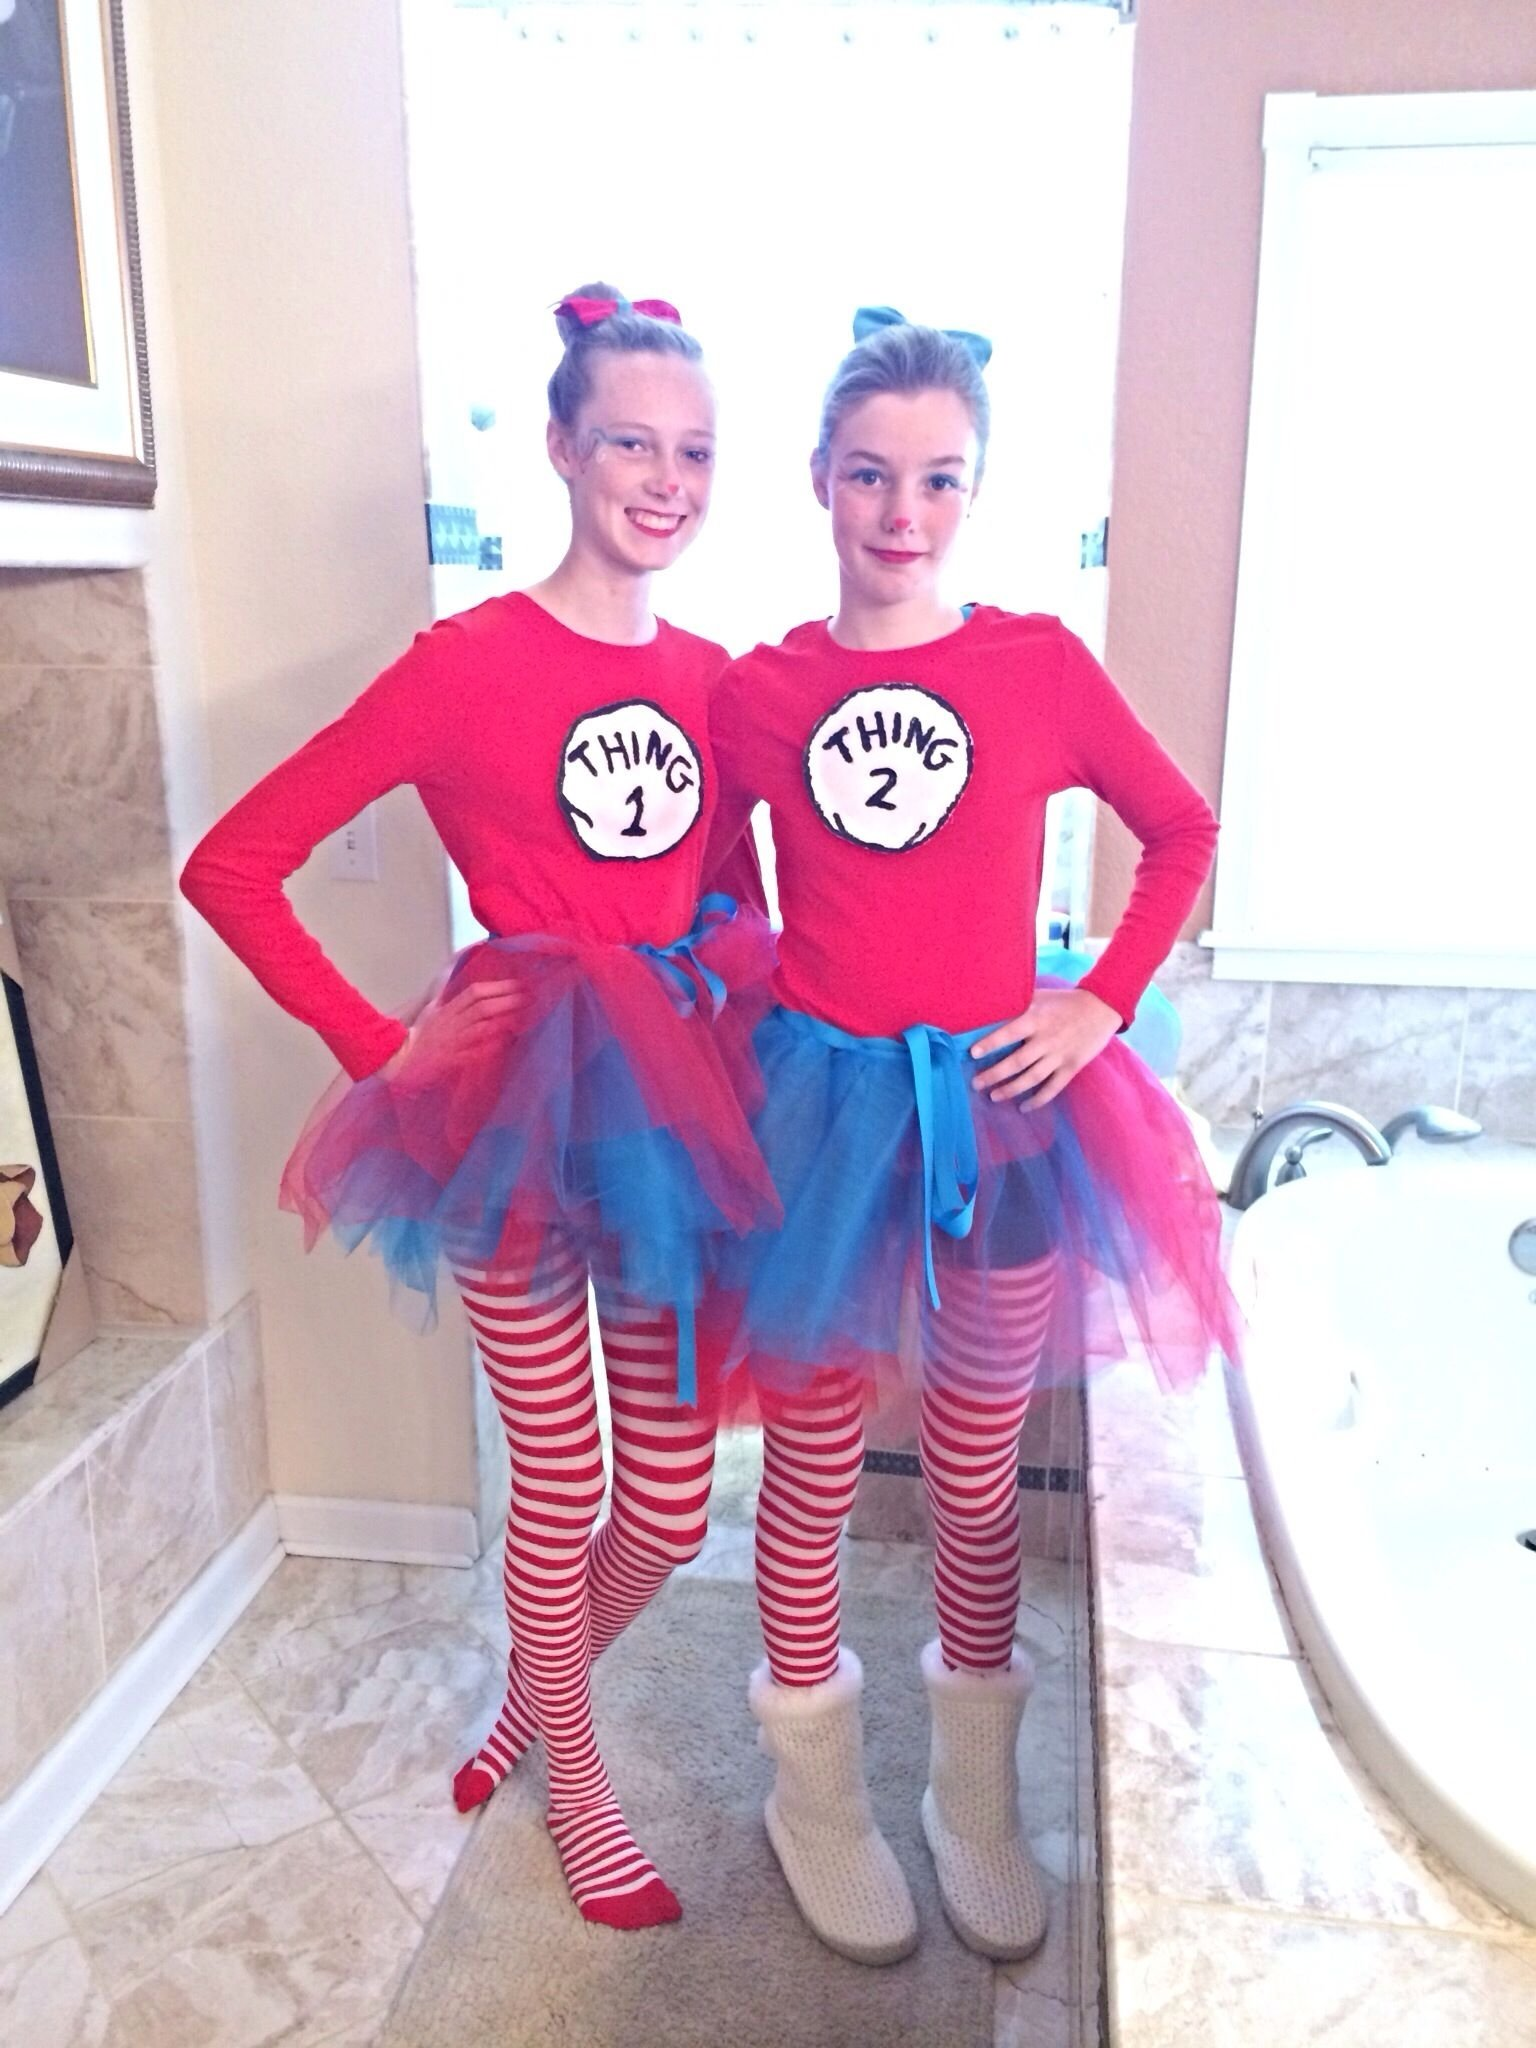 10 Unique Thing 1 And Thing 2 Costume Ideas thing 1 and thing 2 costumes tasia favorites pinterest 2021